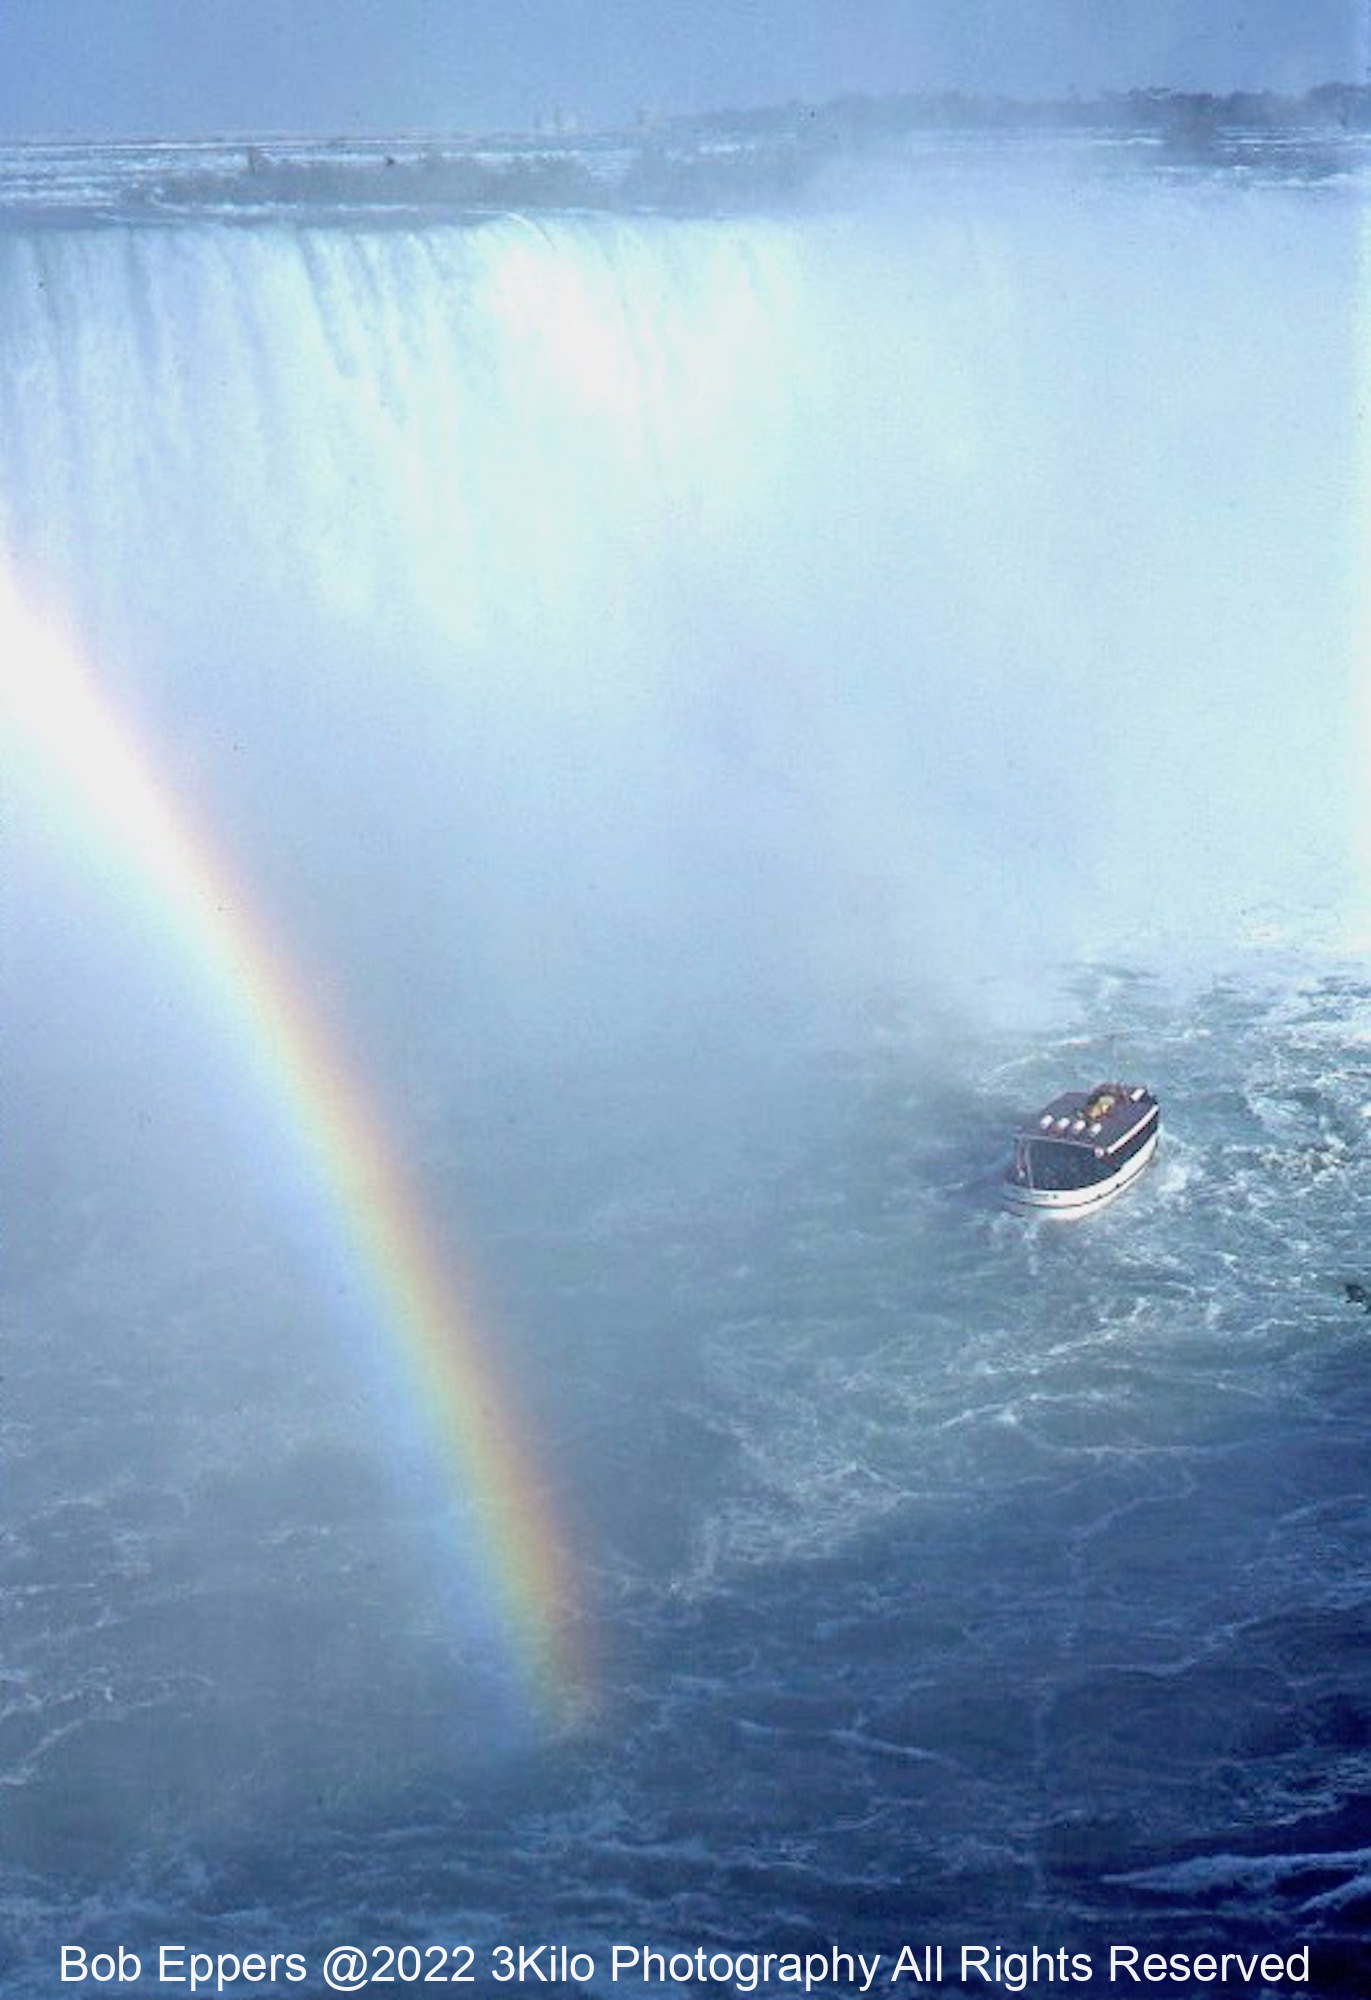 Photo of the Maid of the Mist and Rainbow at Niagara Falls.  This was taken from a 35mm slide over 40 years ago.